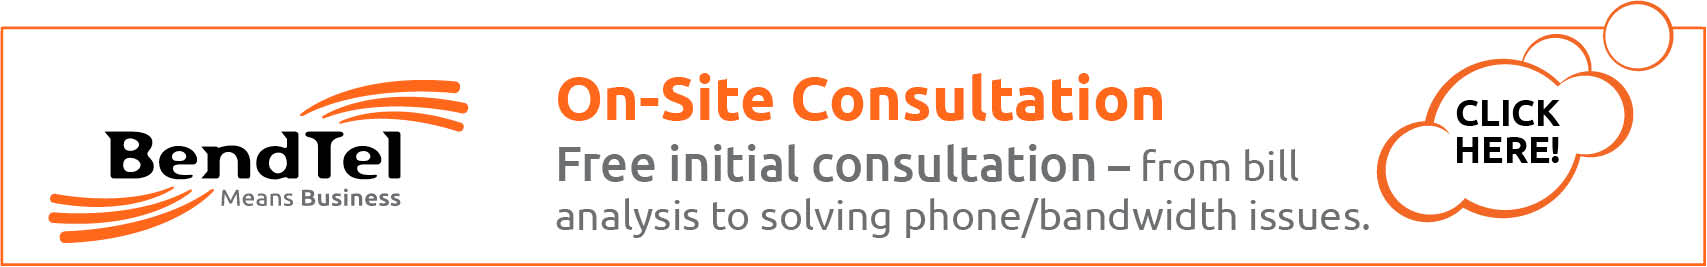 Contact us for a free on-site consultation